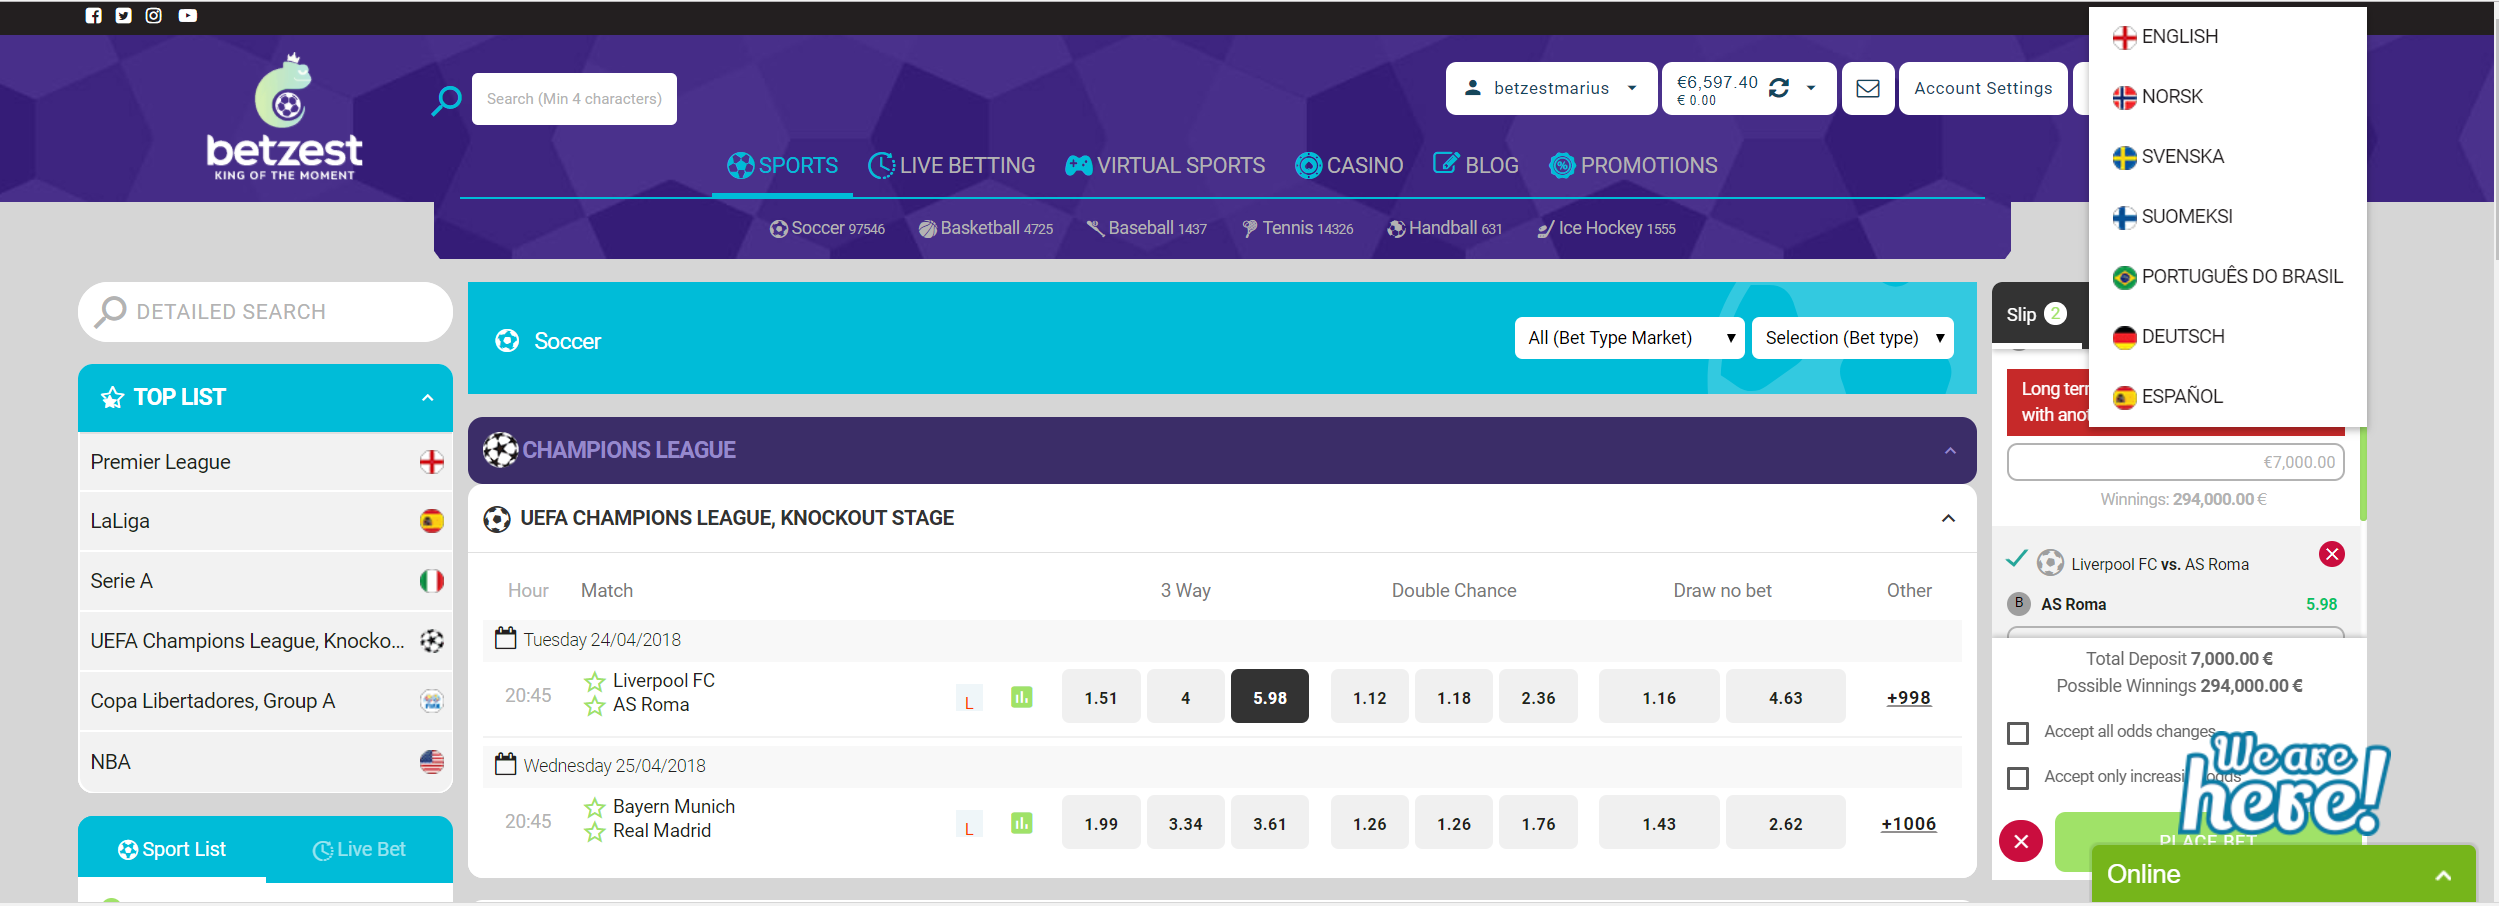 Betzest odds Real madrid vs Bayern